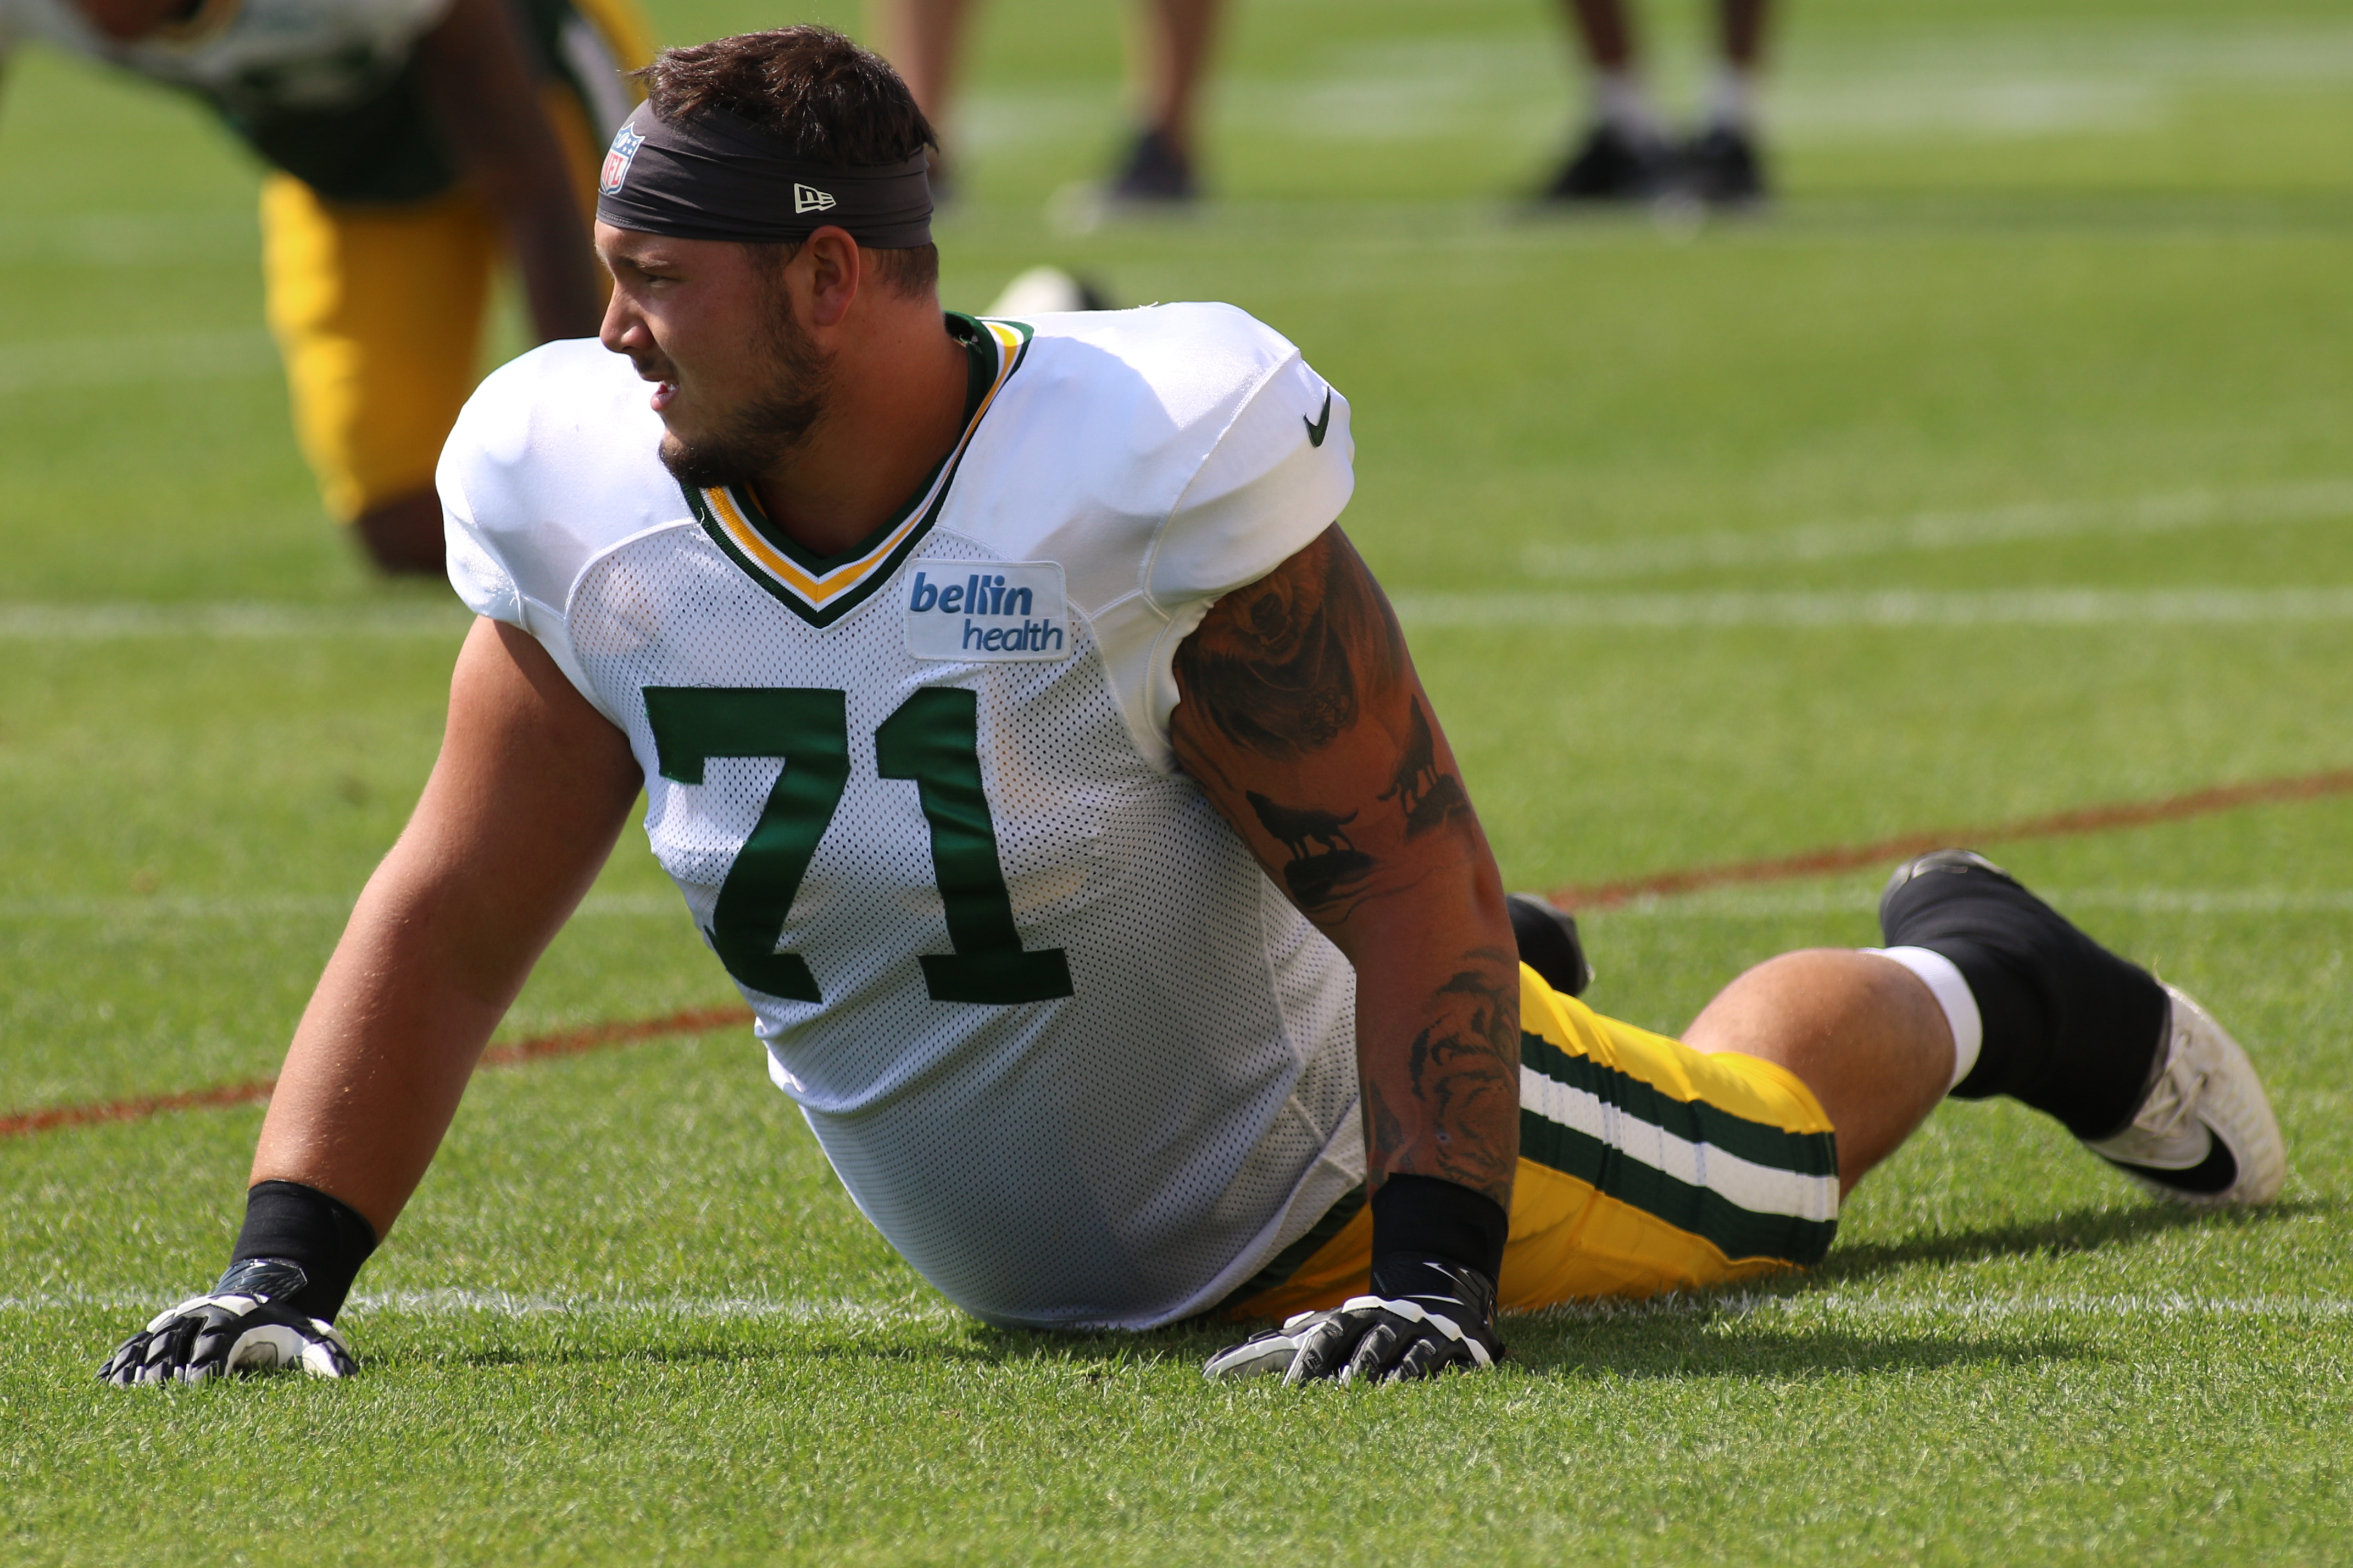 NFL: JUL 31 Packers Training Camp